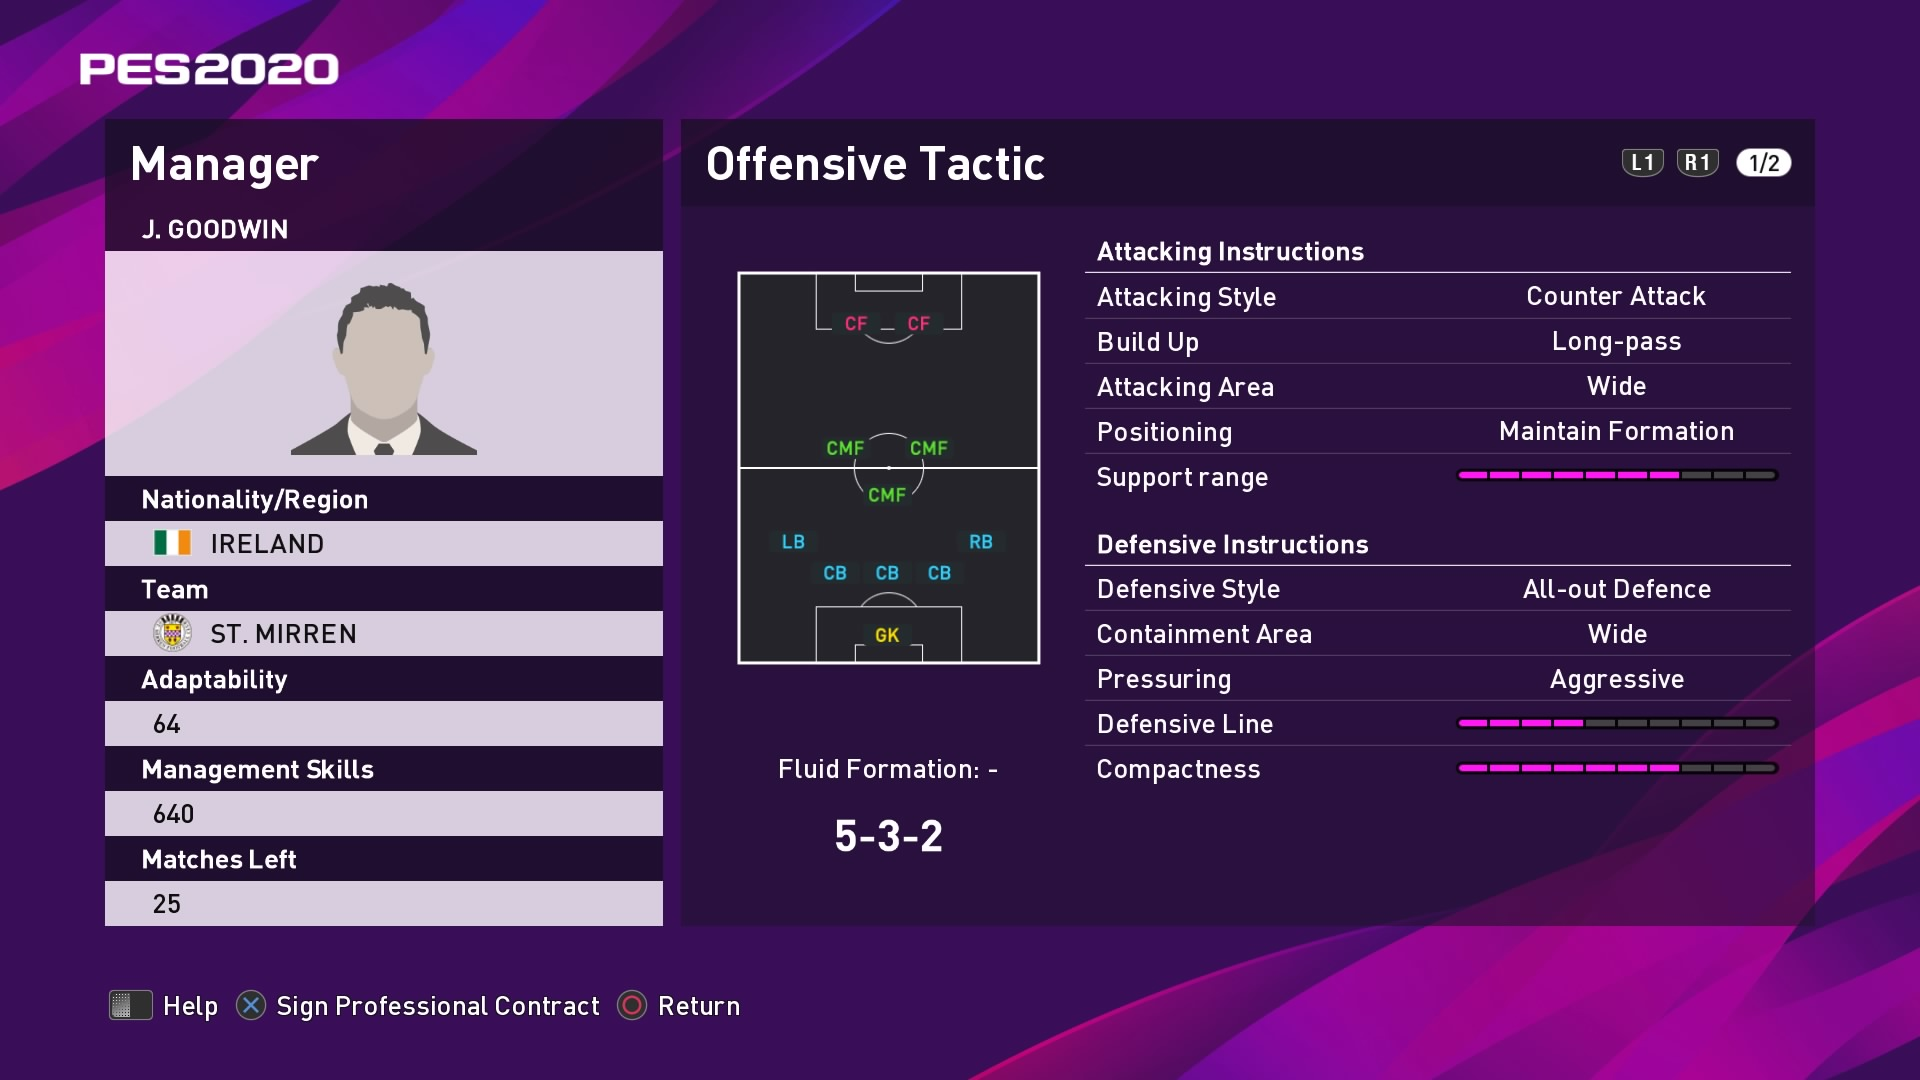 J. Goodwin (Jim Goodwin) Offensive Tactic in PES 2020 myClub